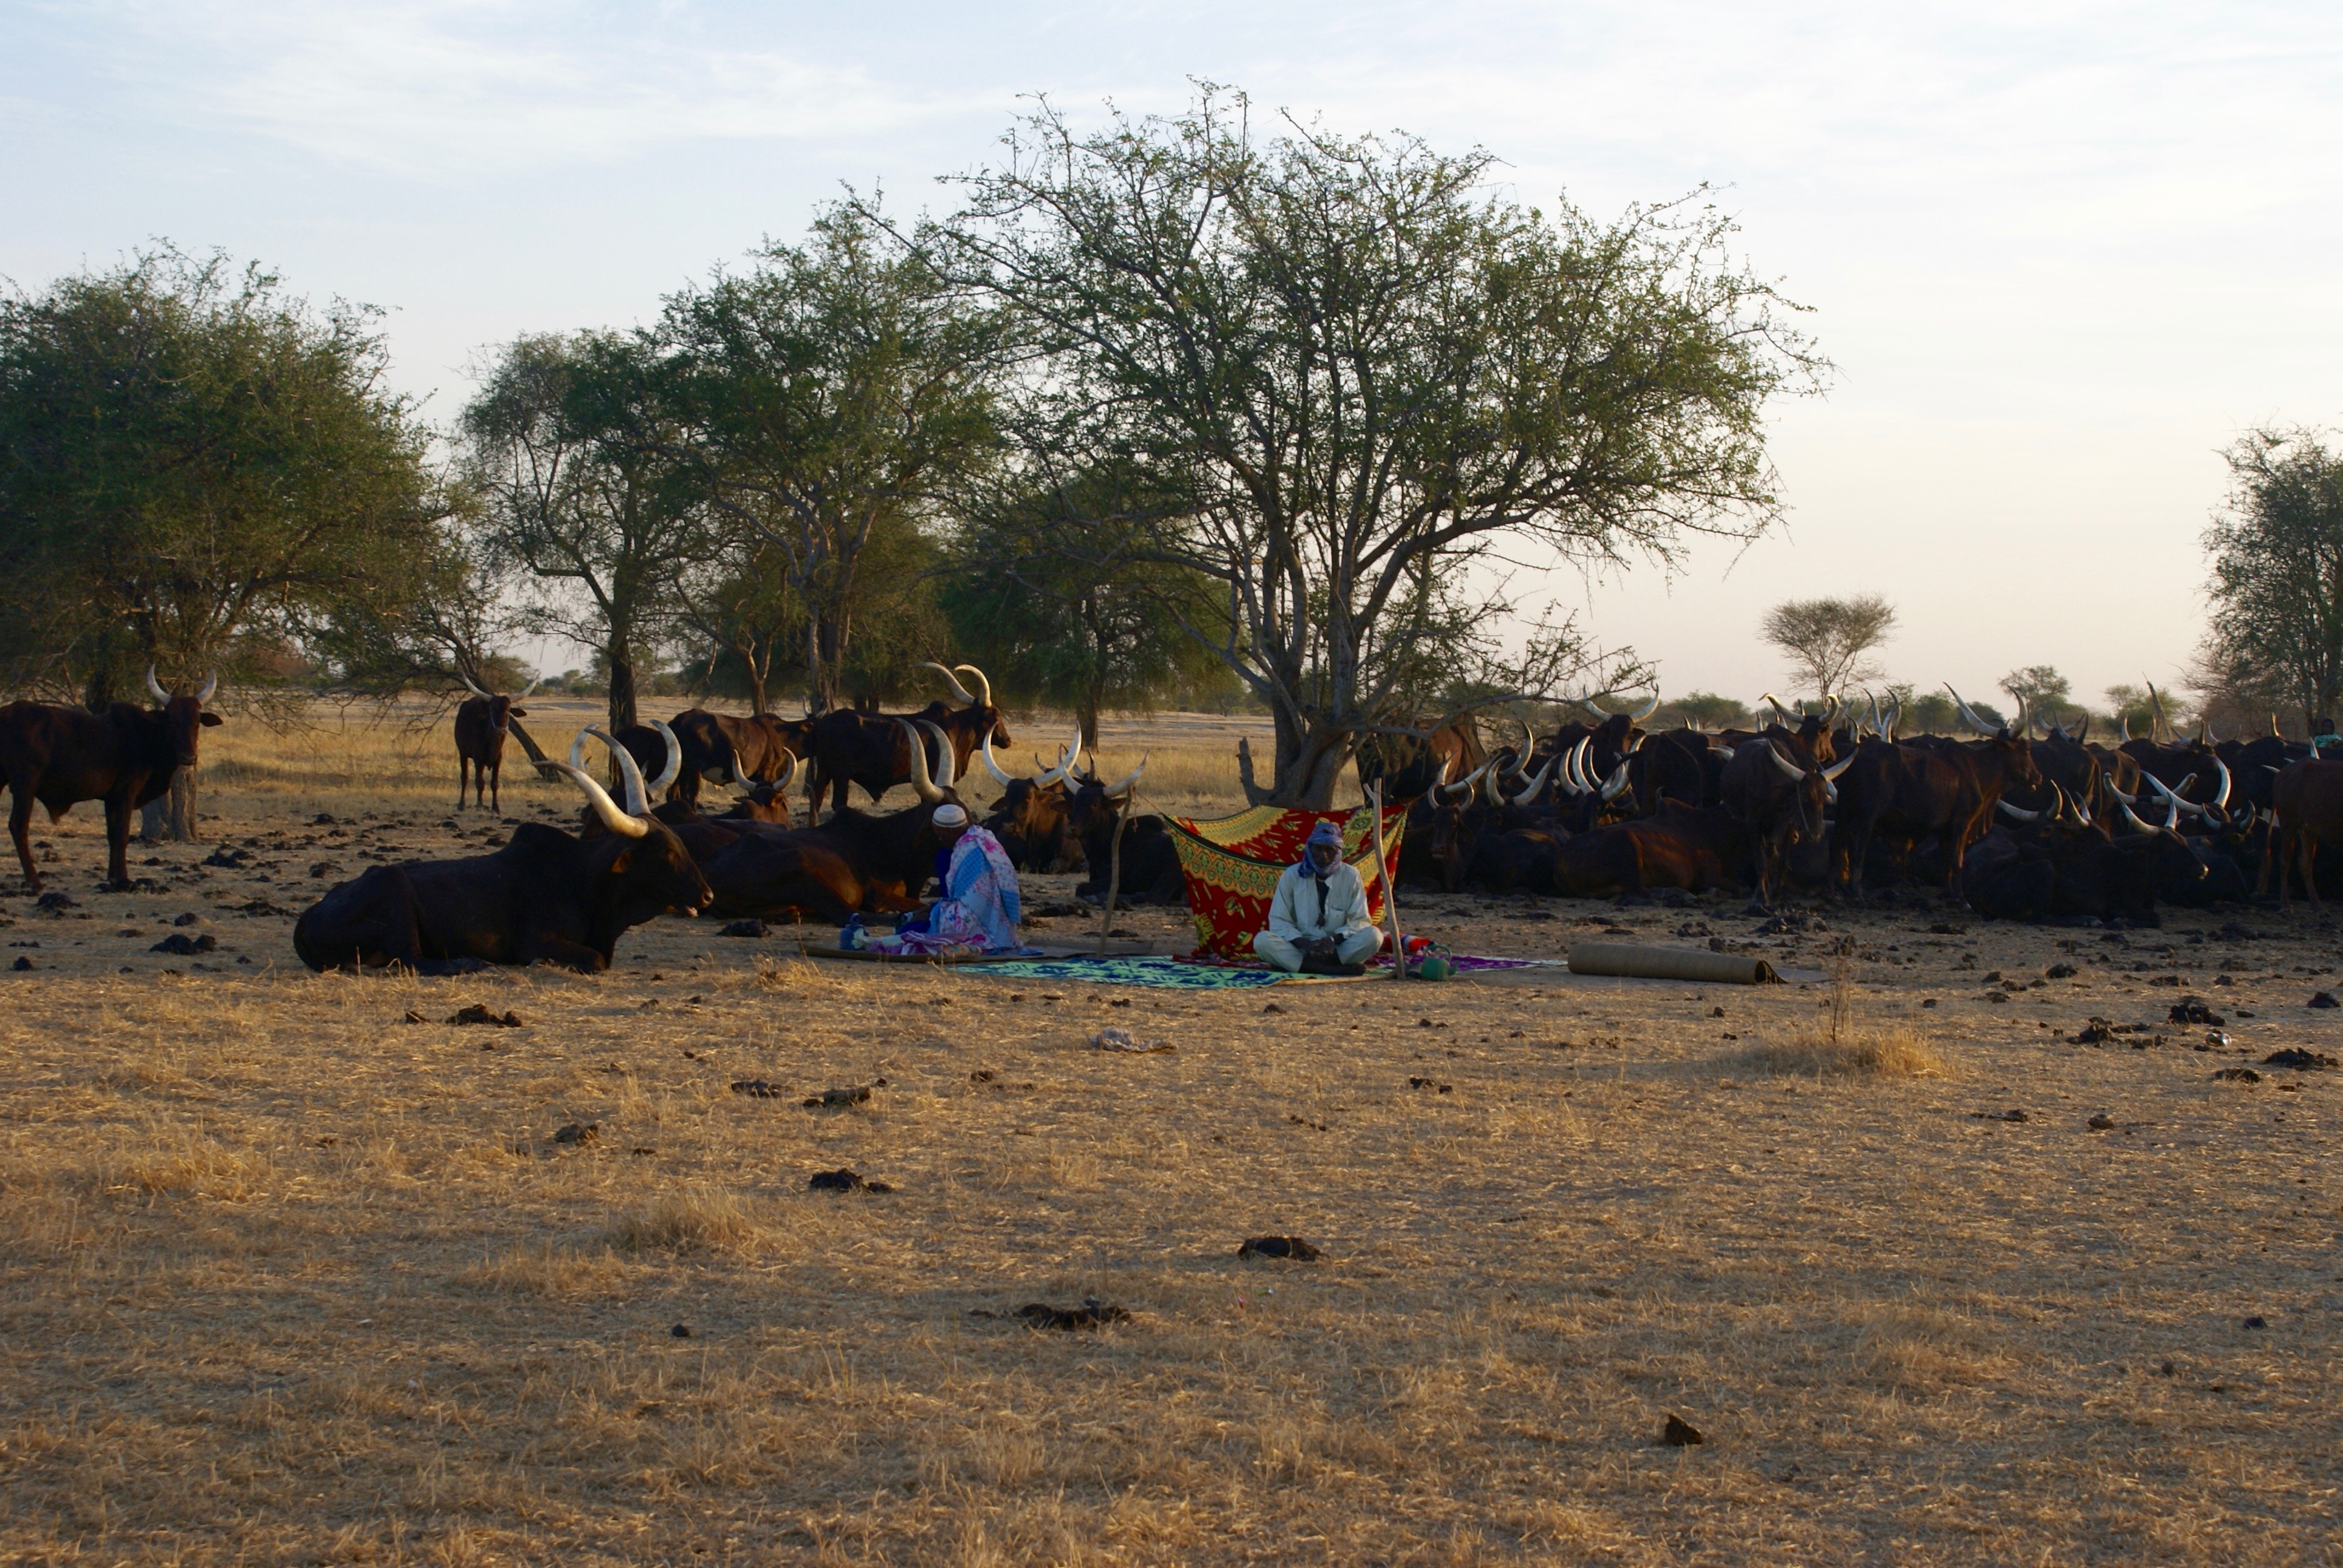 In an arid region with few trees, a herd of oxen is lying down, resting. In front of the animals, two men sit on colorful blankets.